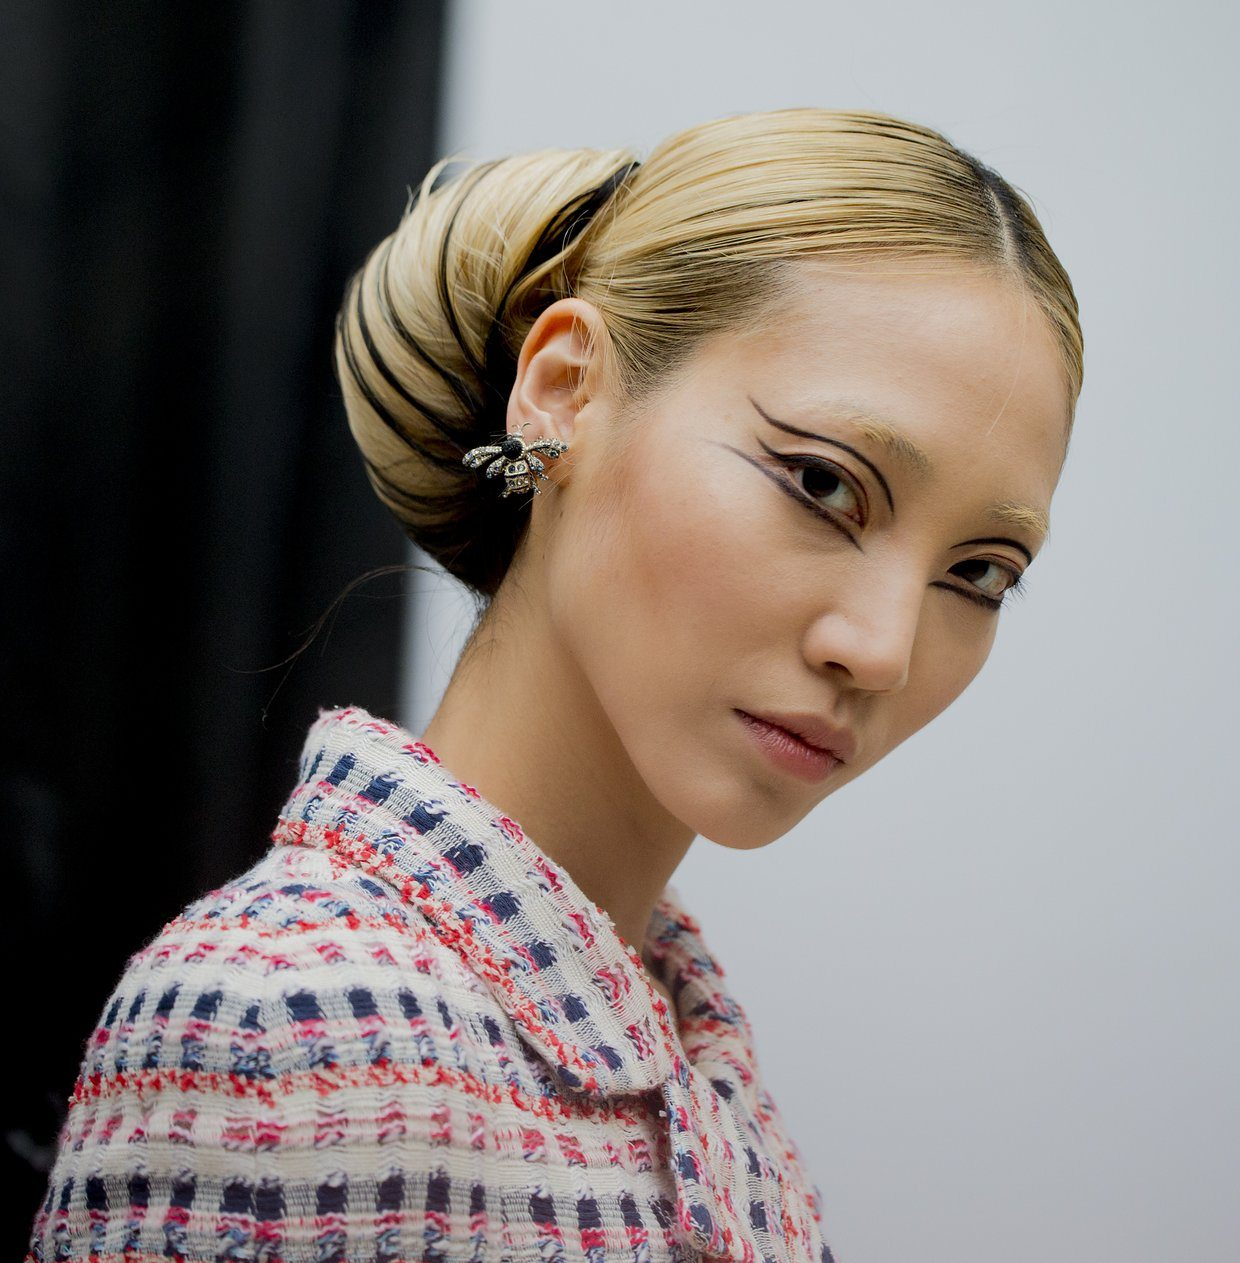 chanel-spring-2016-couture-backstage-kevin-tachman-11